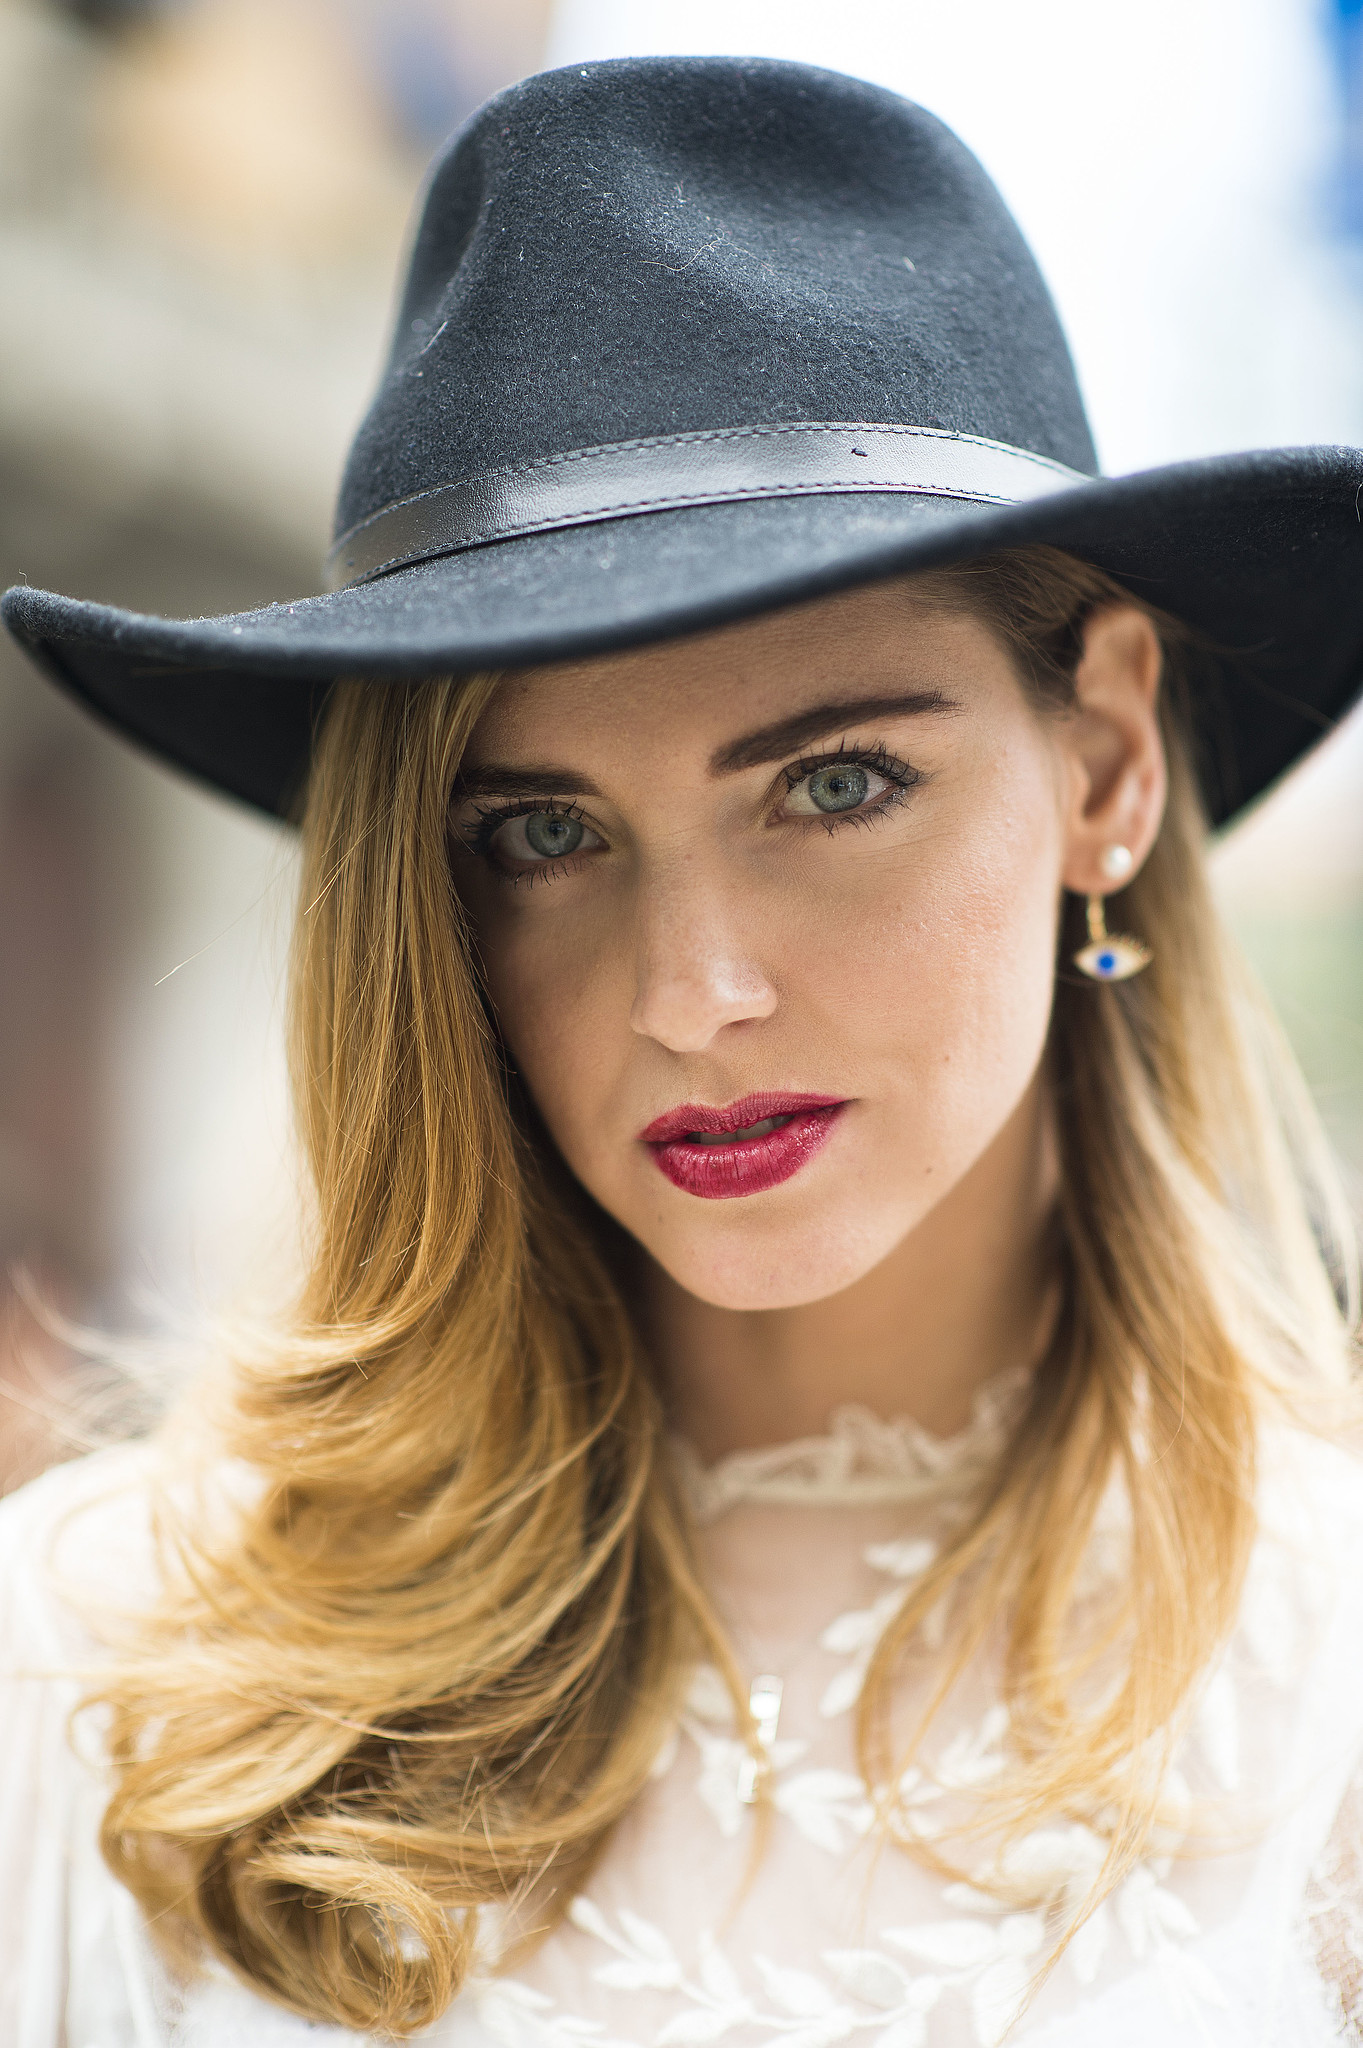 Chiara Ferragni looked effortlessly glamorous in a diffused red lip, which she paired with striking bold brows. Source: Le 21ème | Adam Katz Sinding